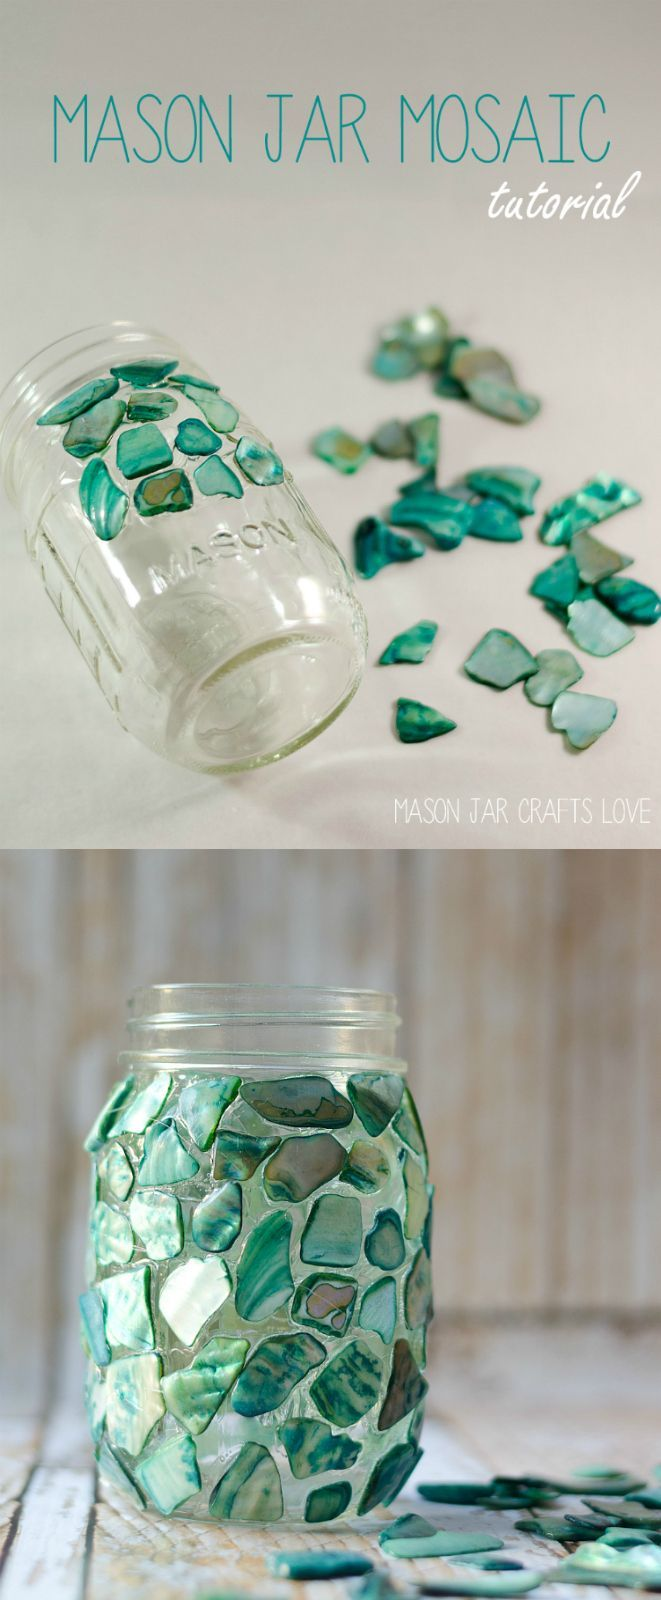 Superior Mason Jar Decorations Part - 8: Mason Jar Craft Ideas - Mason Jar Mosaic - Mosaic Craft - @Mason Jar Crafts